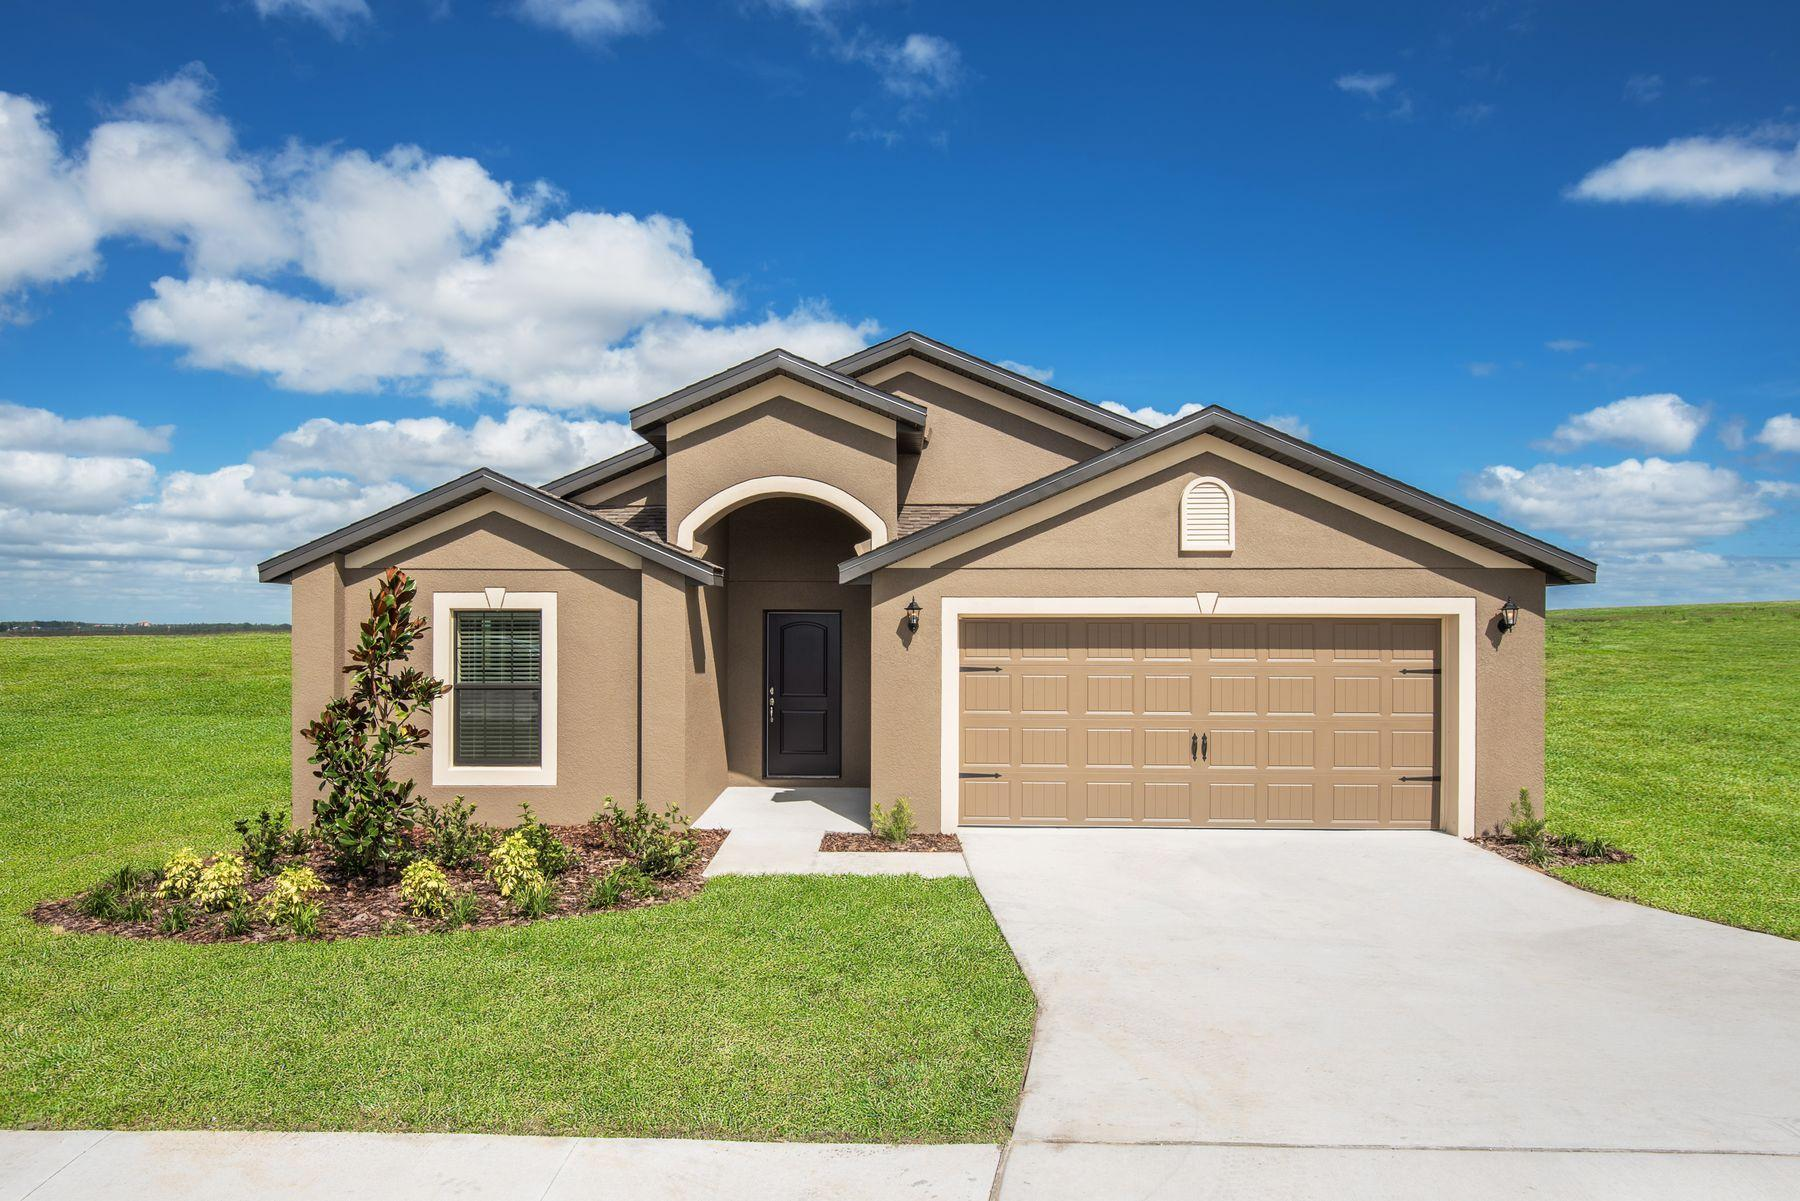 The Estero by LGI Homes:This gorgeous dream home comes with energy-efficient appliances already included